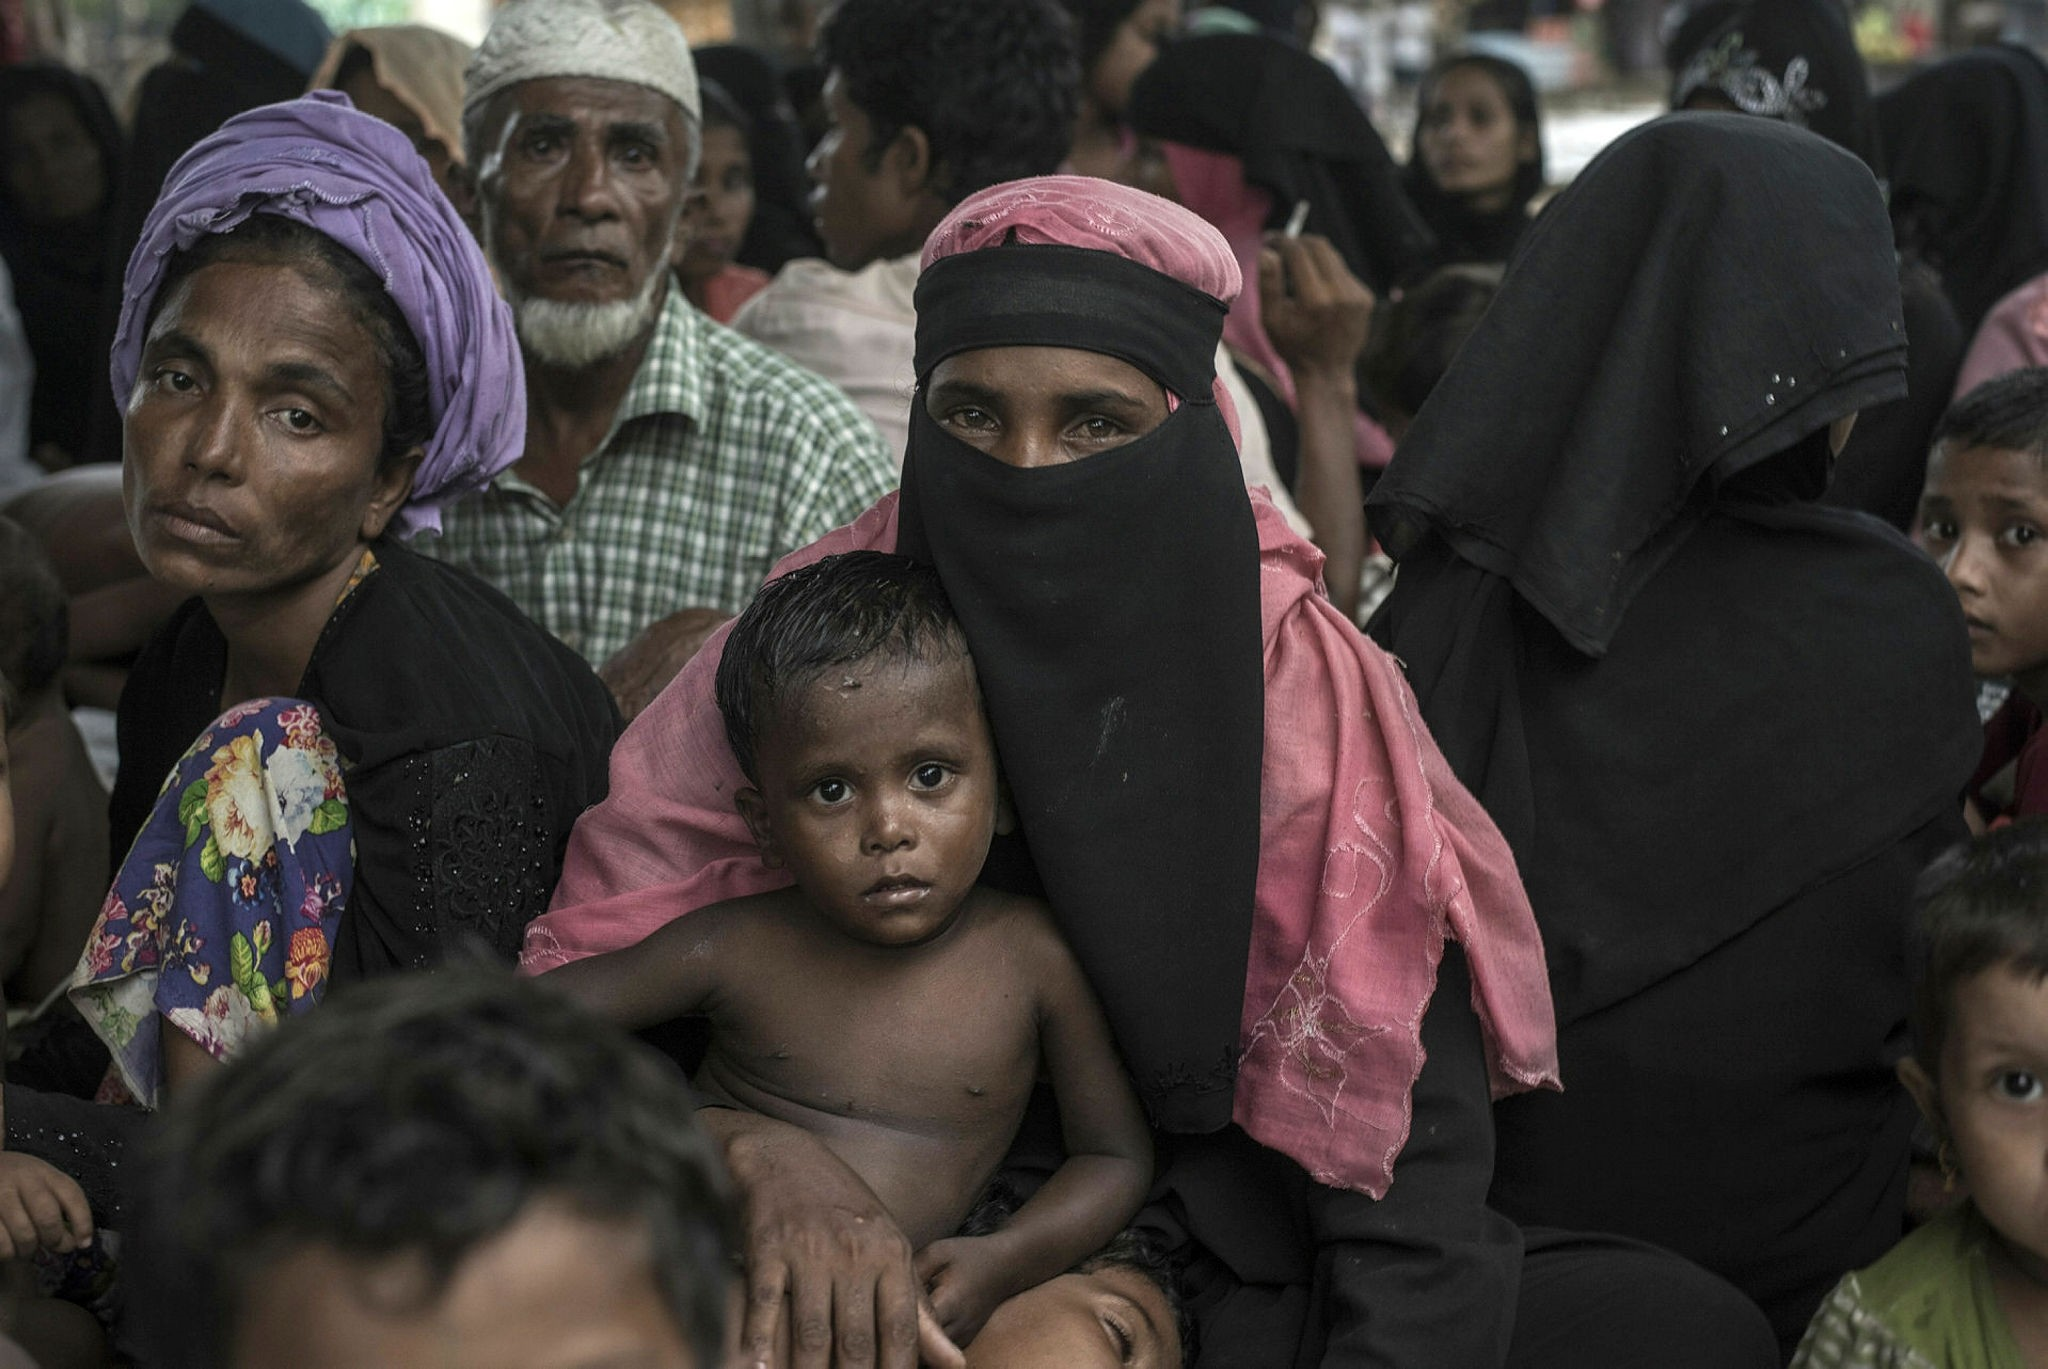 Rohingya Muslim refugees take shelter from the rain at the registration center in Teknaf in Bangladesh's Ukhia district, Oct. 6.